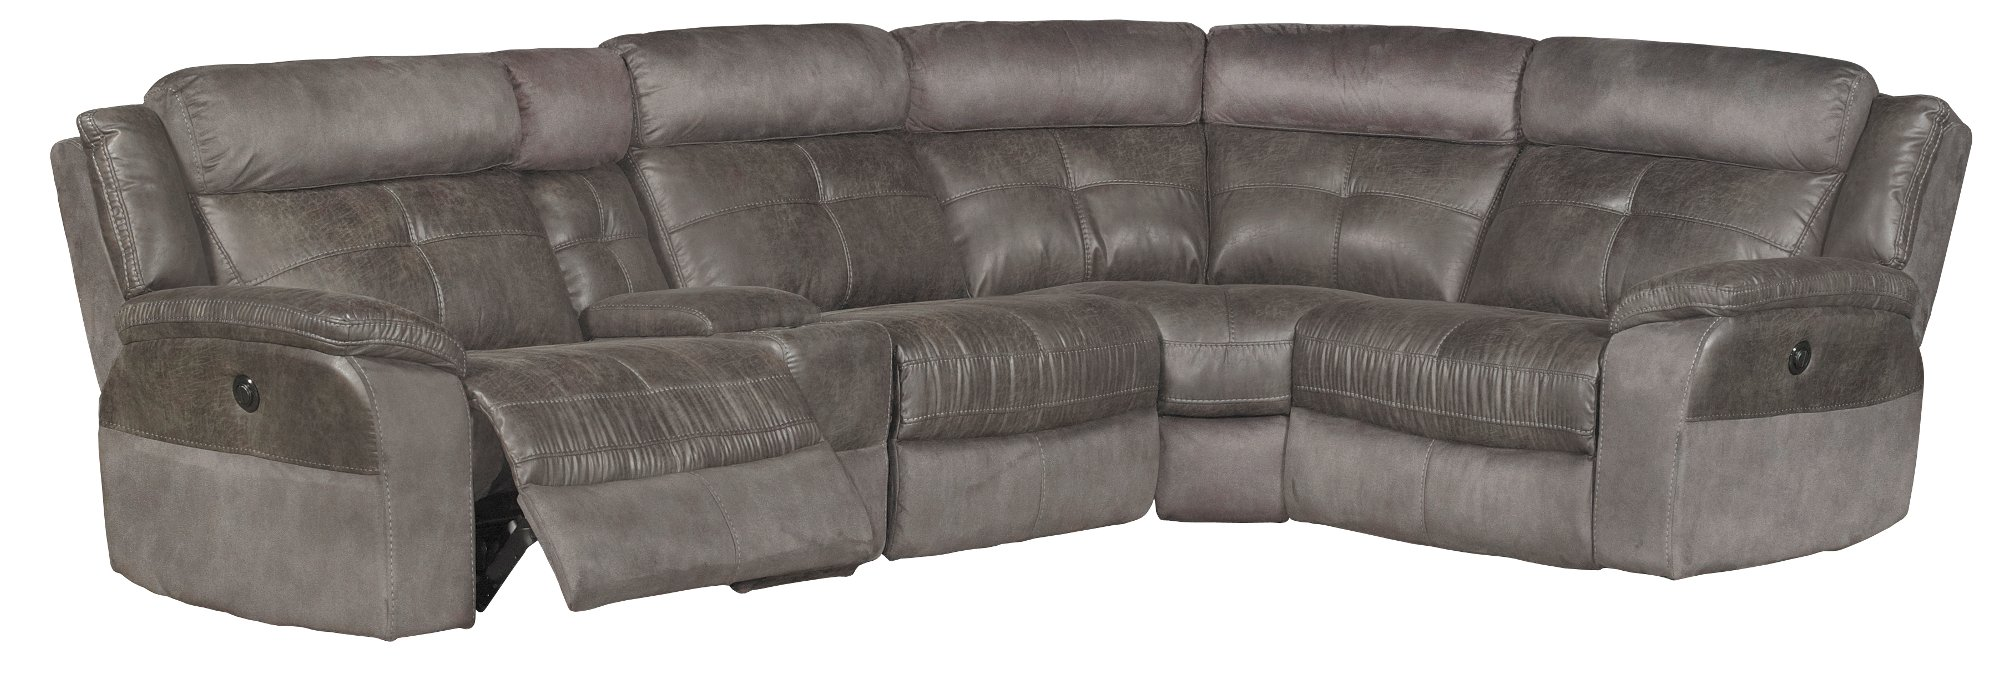 Gray 5 Piece 3x Power Reclining Sectional Sofa Denver From R C Willey Accuweather Shop